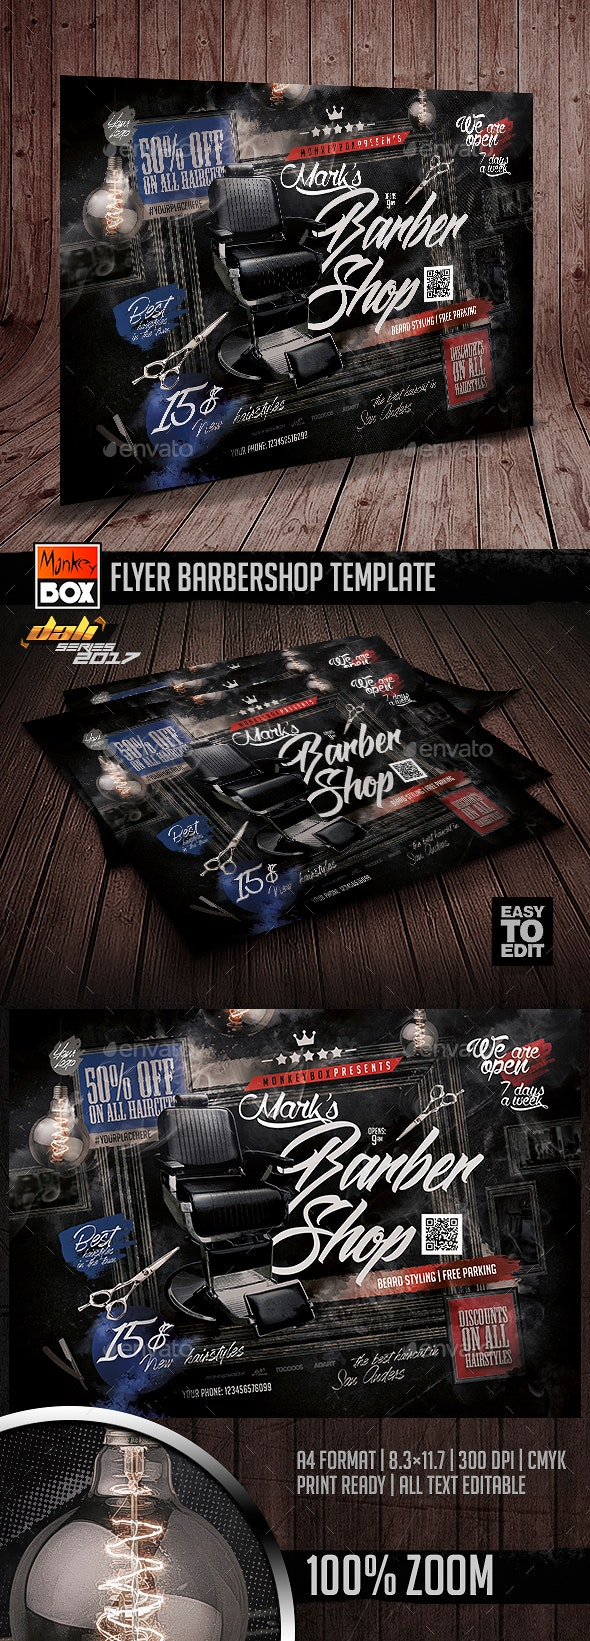 Flyer Barbershop Template - Flyers Print Templates